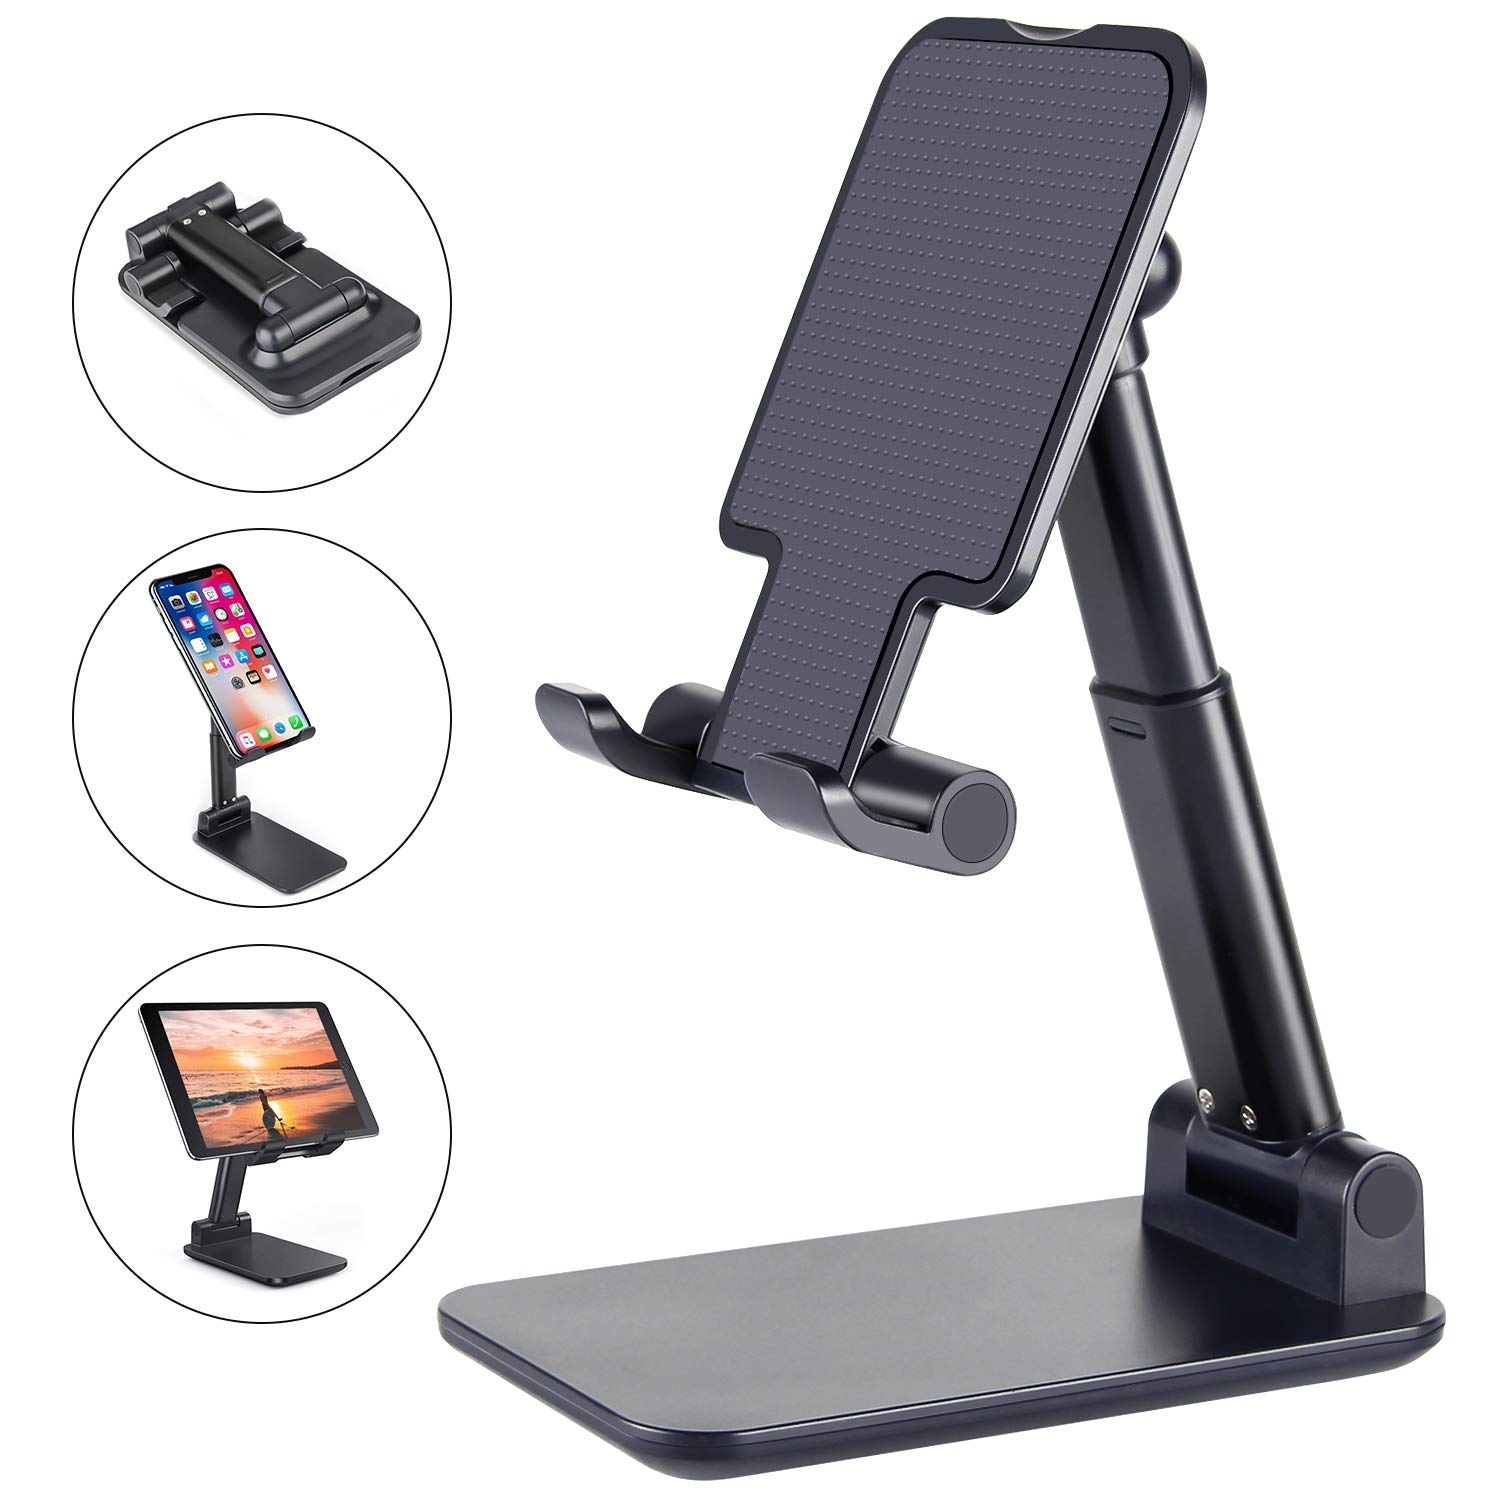 Cell Phone Stand, ANDATE Angle Height Adjustable Cell Phone Stand for Desk, Fully Foldable Phone Holder, Tablet Stand, Case Friendly Compatible with All Mobile Phone/iPad/Kindle/Tablet (Black)